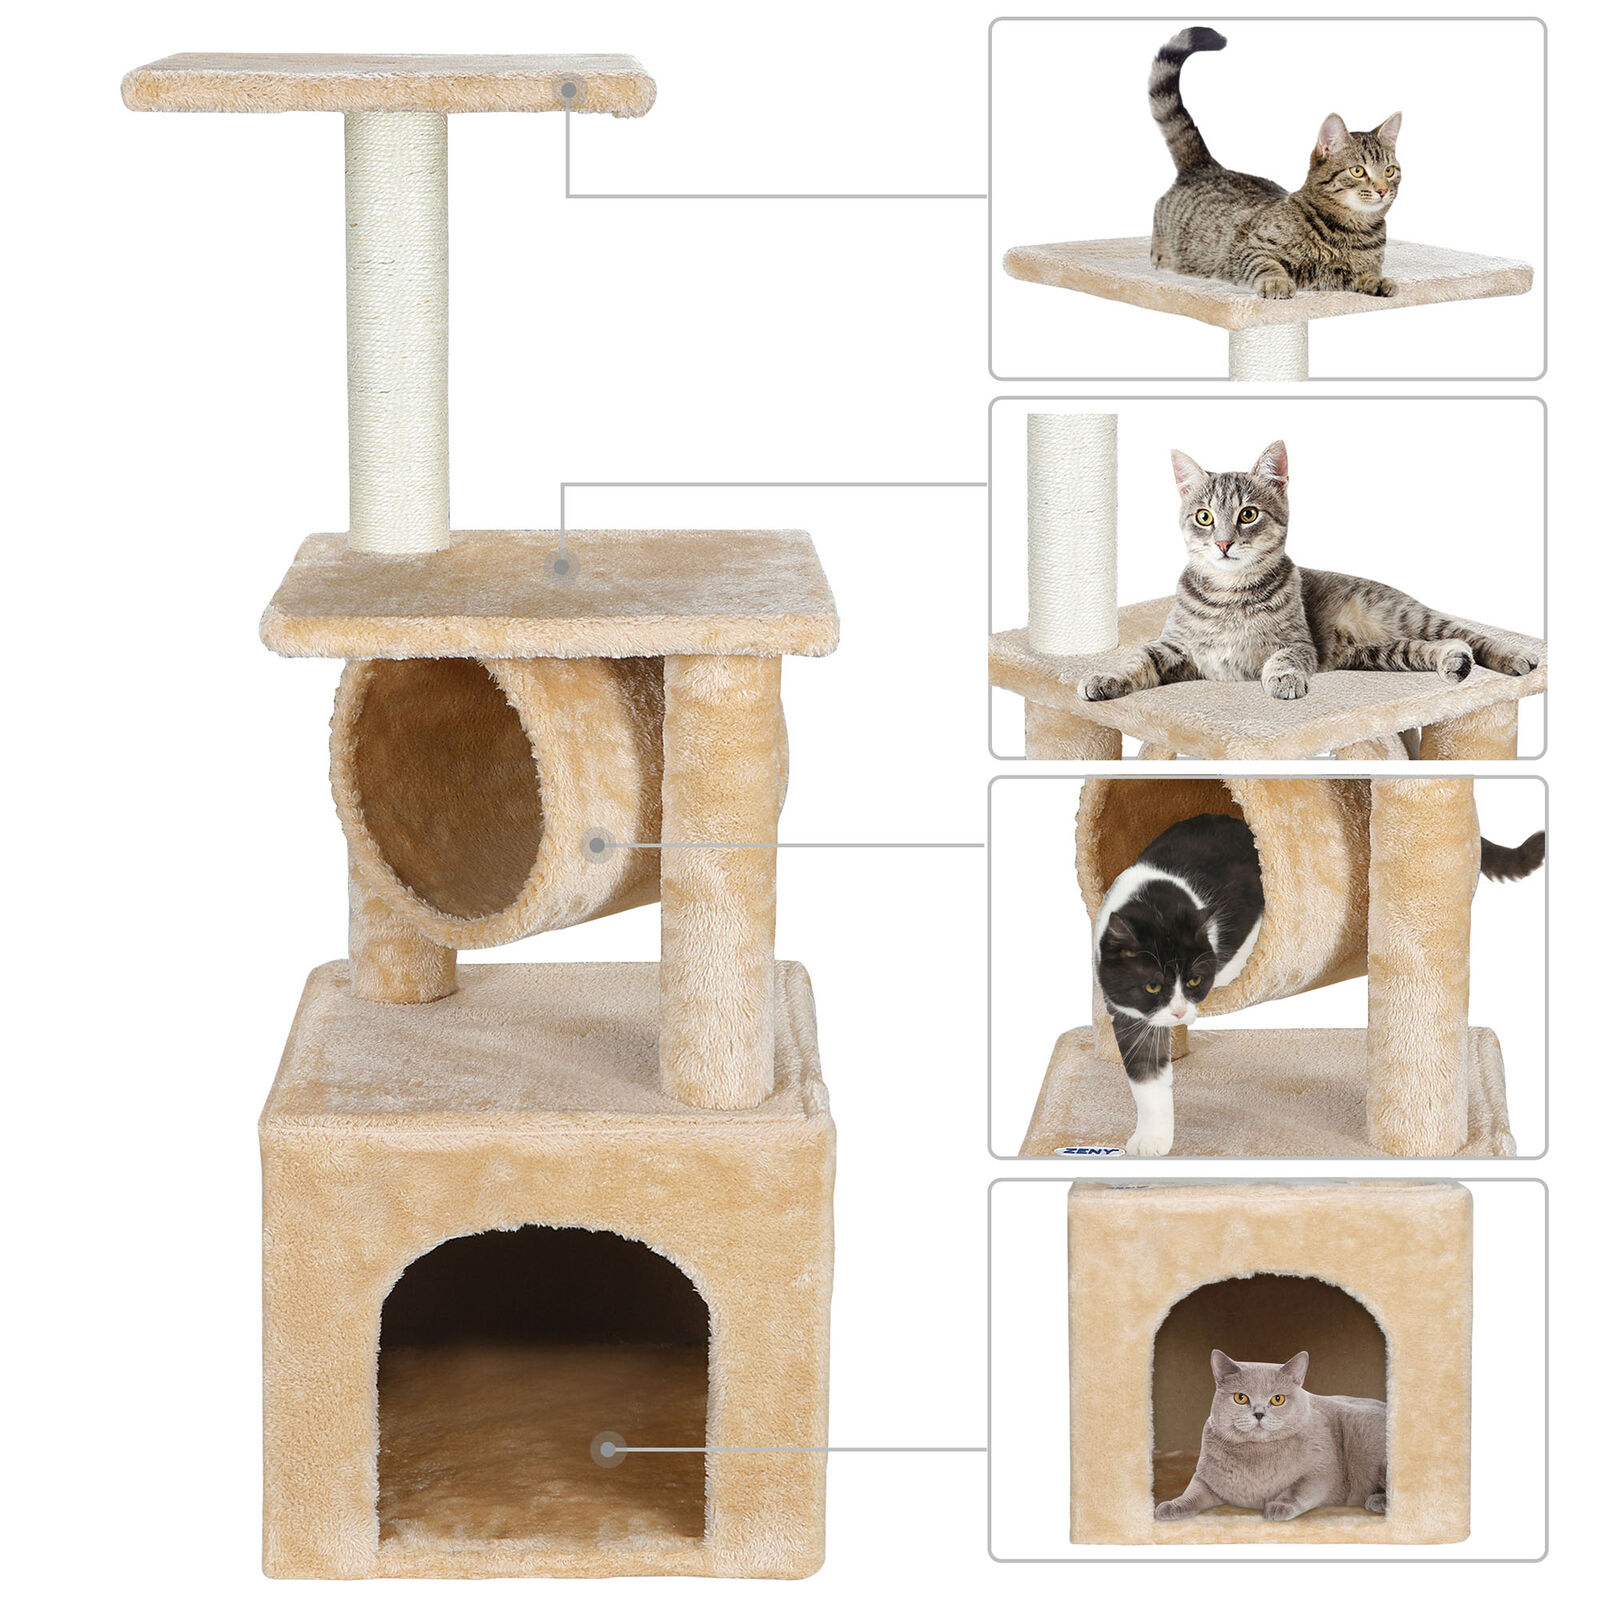 36 Inch Cat Tree Tower Activity Center Large Playing House Condo For Rest&Sleep Cat Supplies